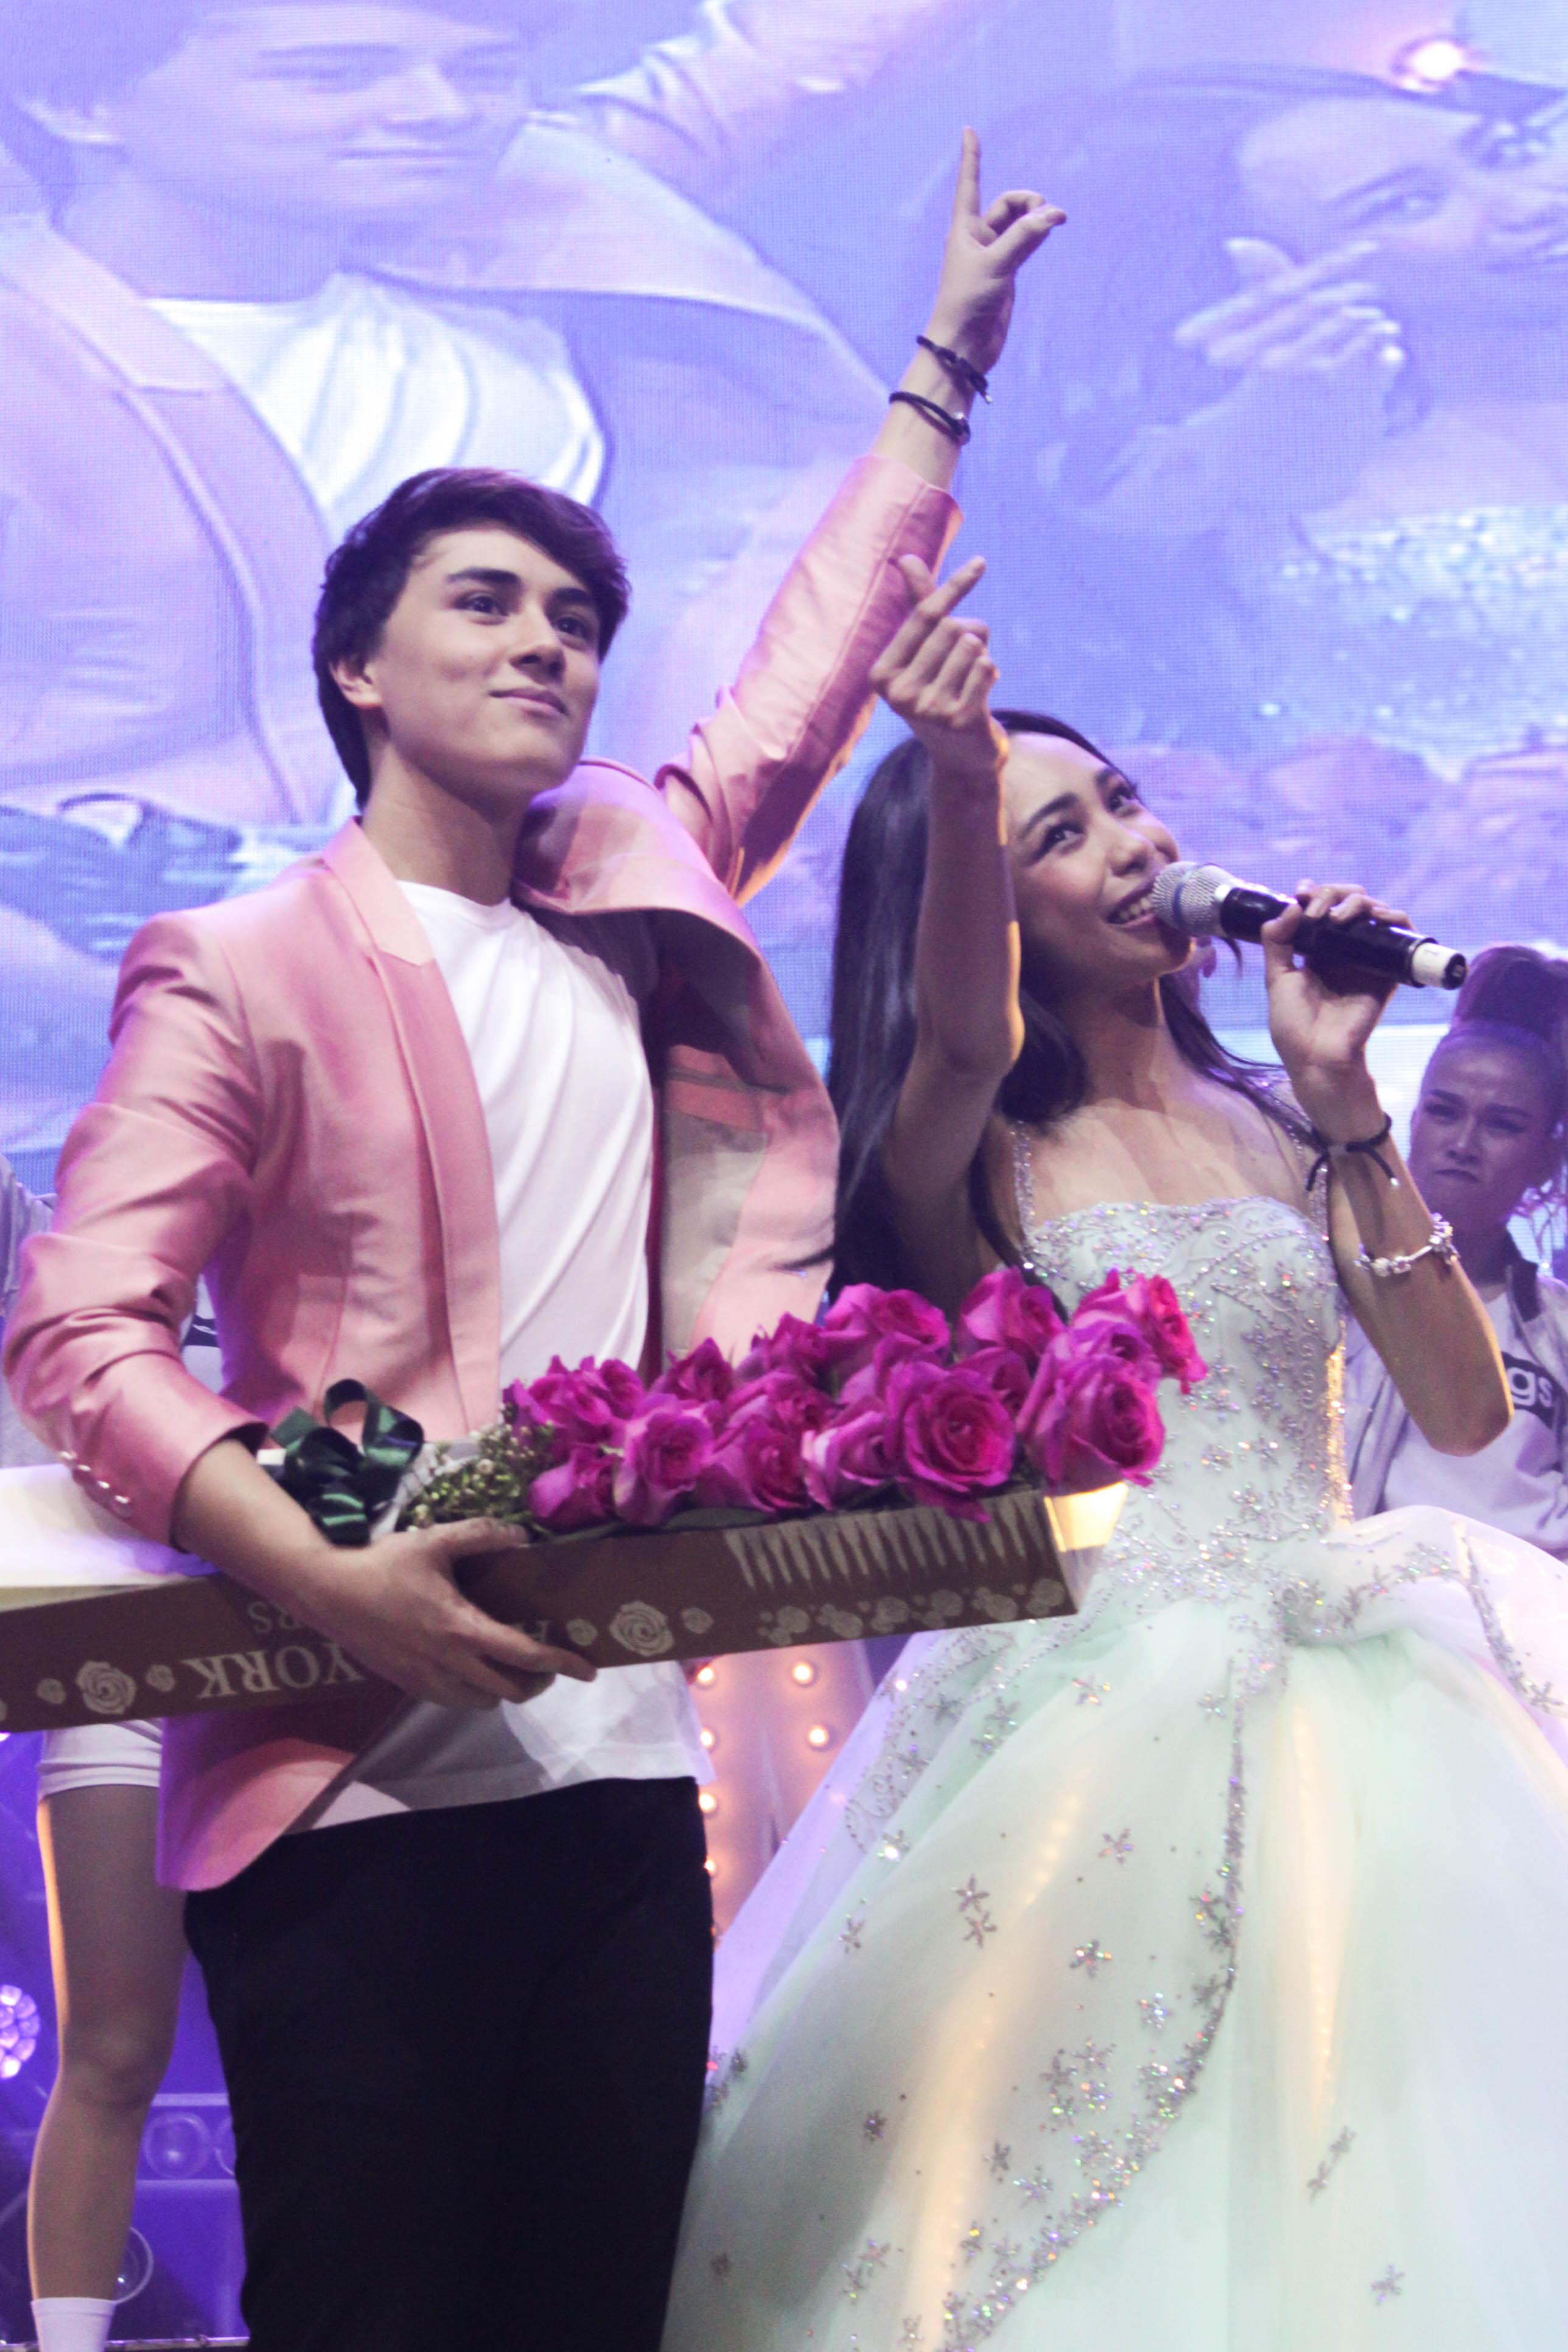 Rising artists Maymay Entrata and Edward Barber